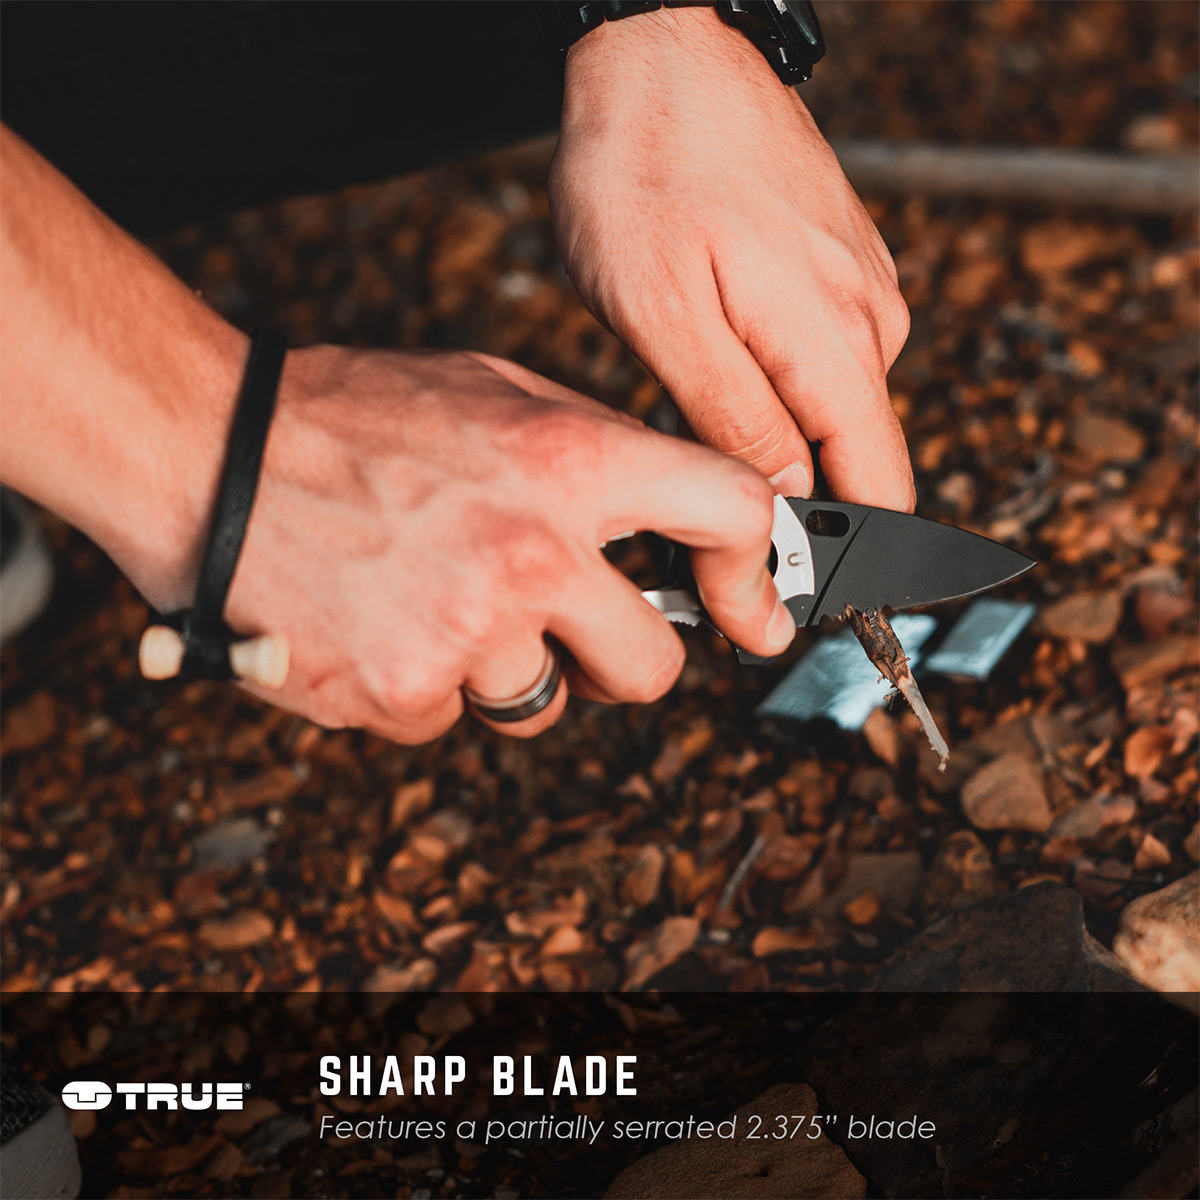 The TRUE Knives SmartKnife+ - Blade First, Multitool Second